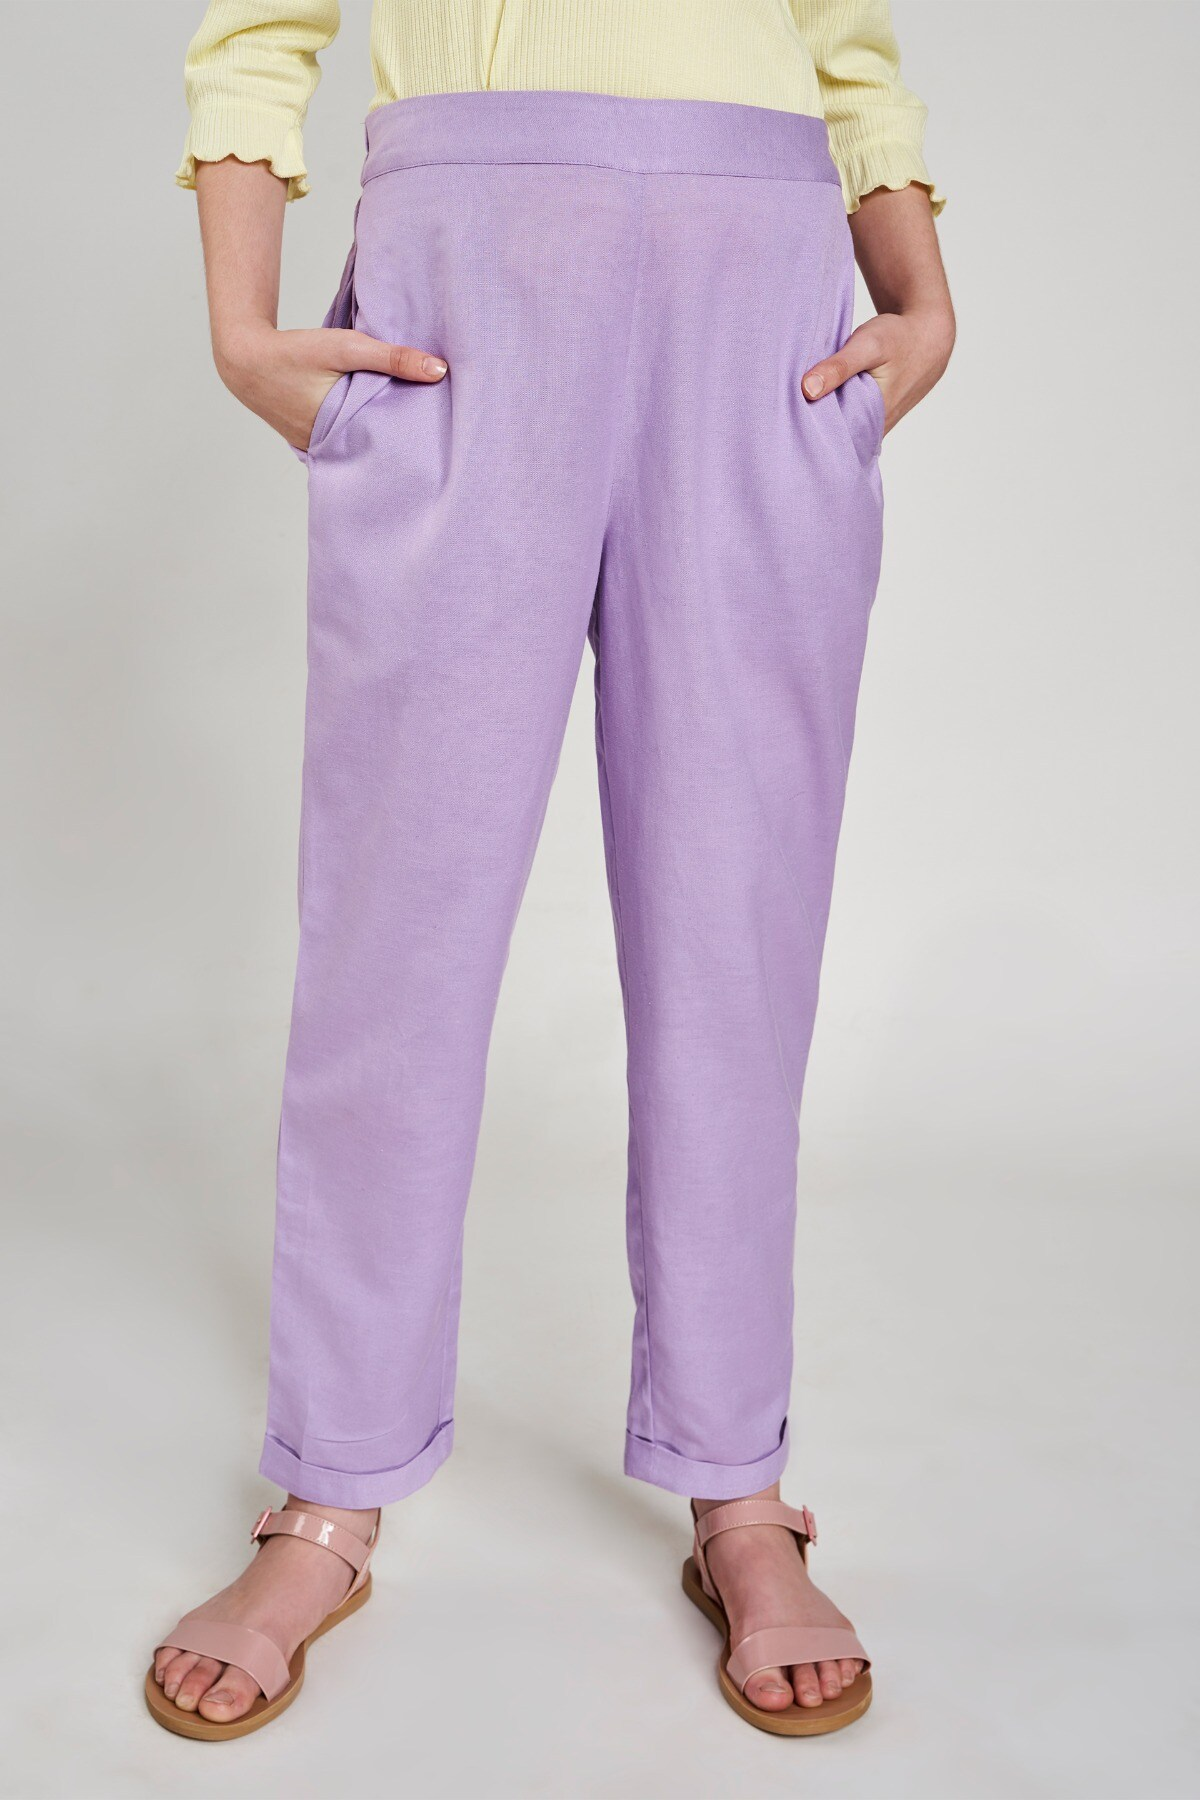 AND | Lilac Solid  Bottom